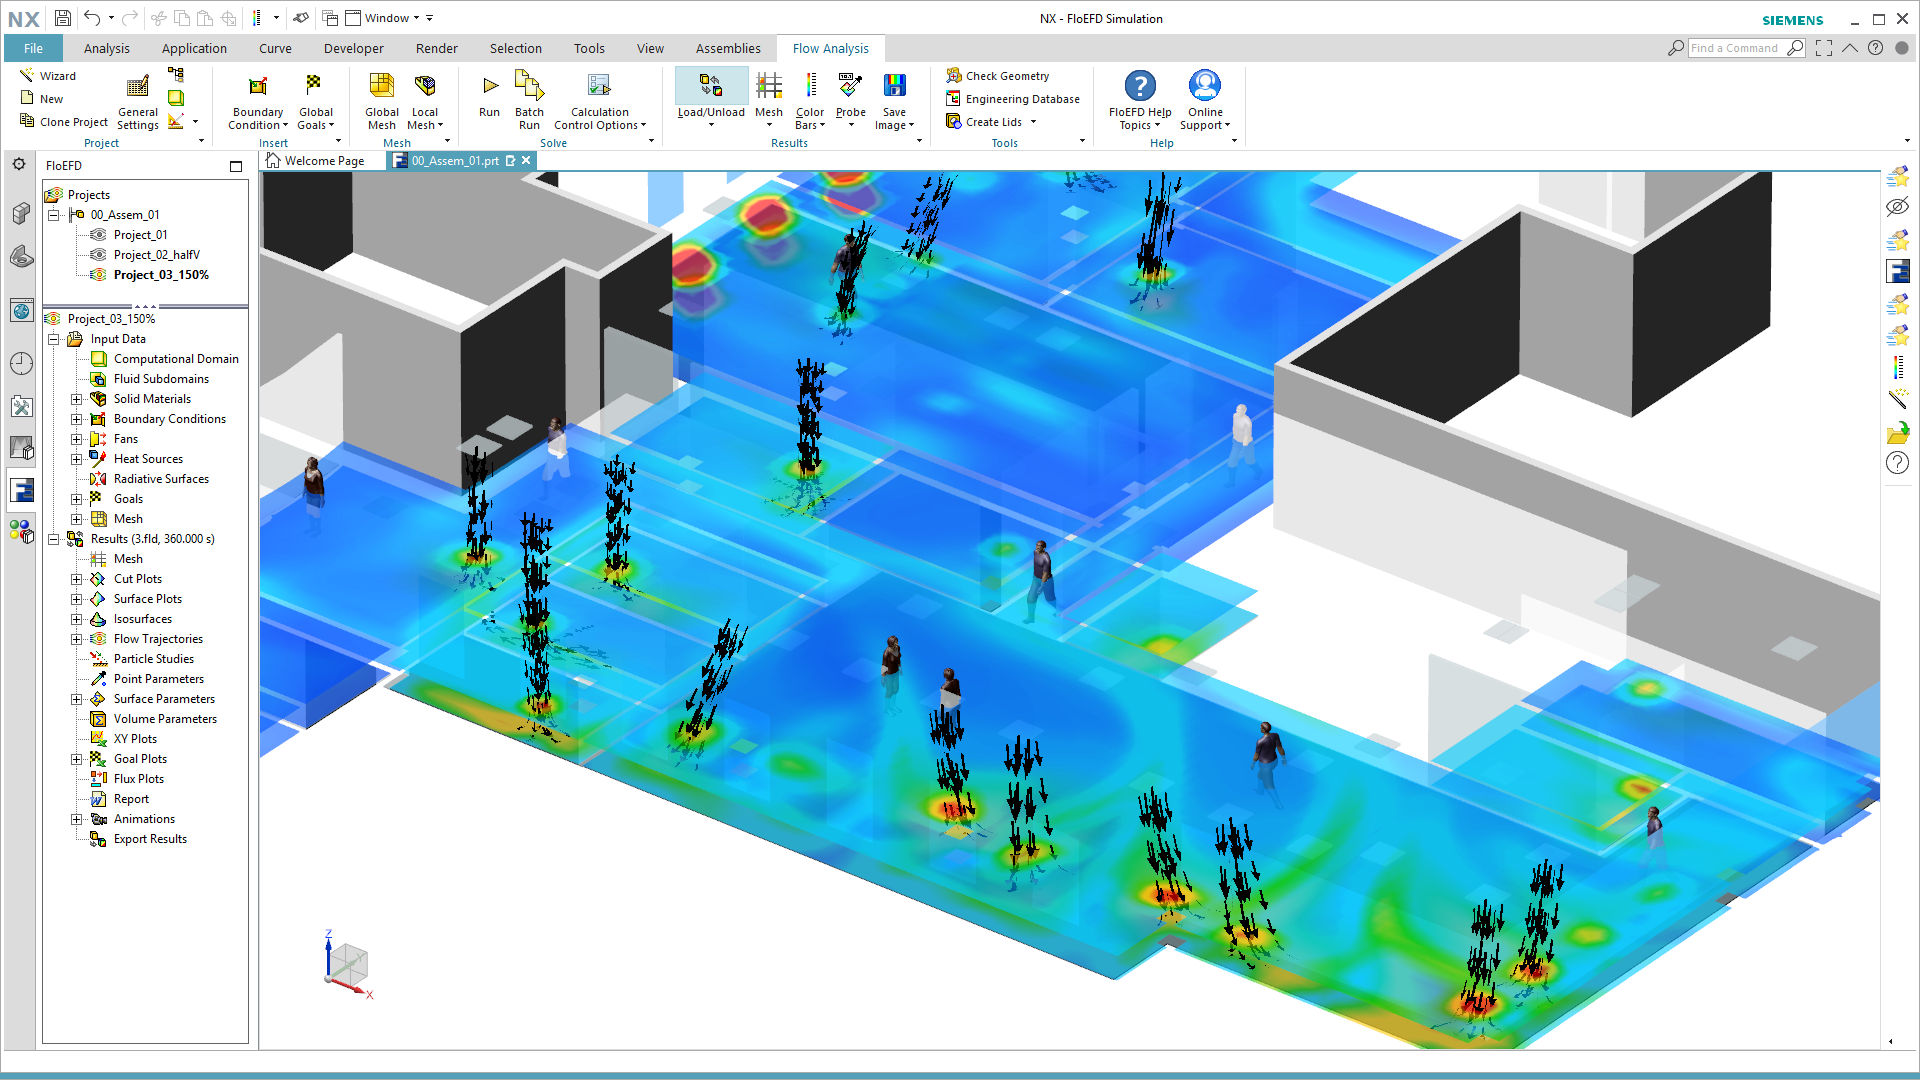 HVAC CFD Software embedded in NX-CAD environment